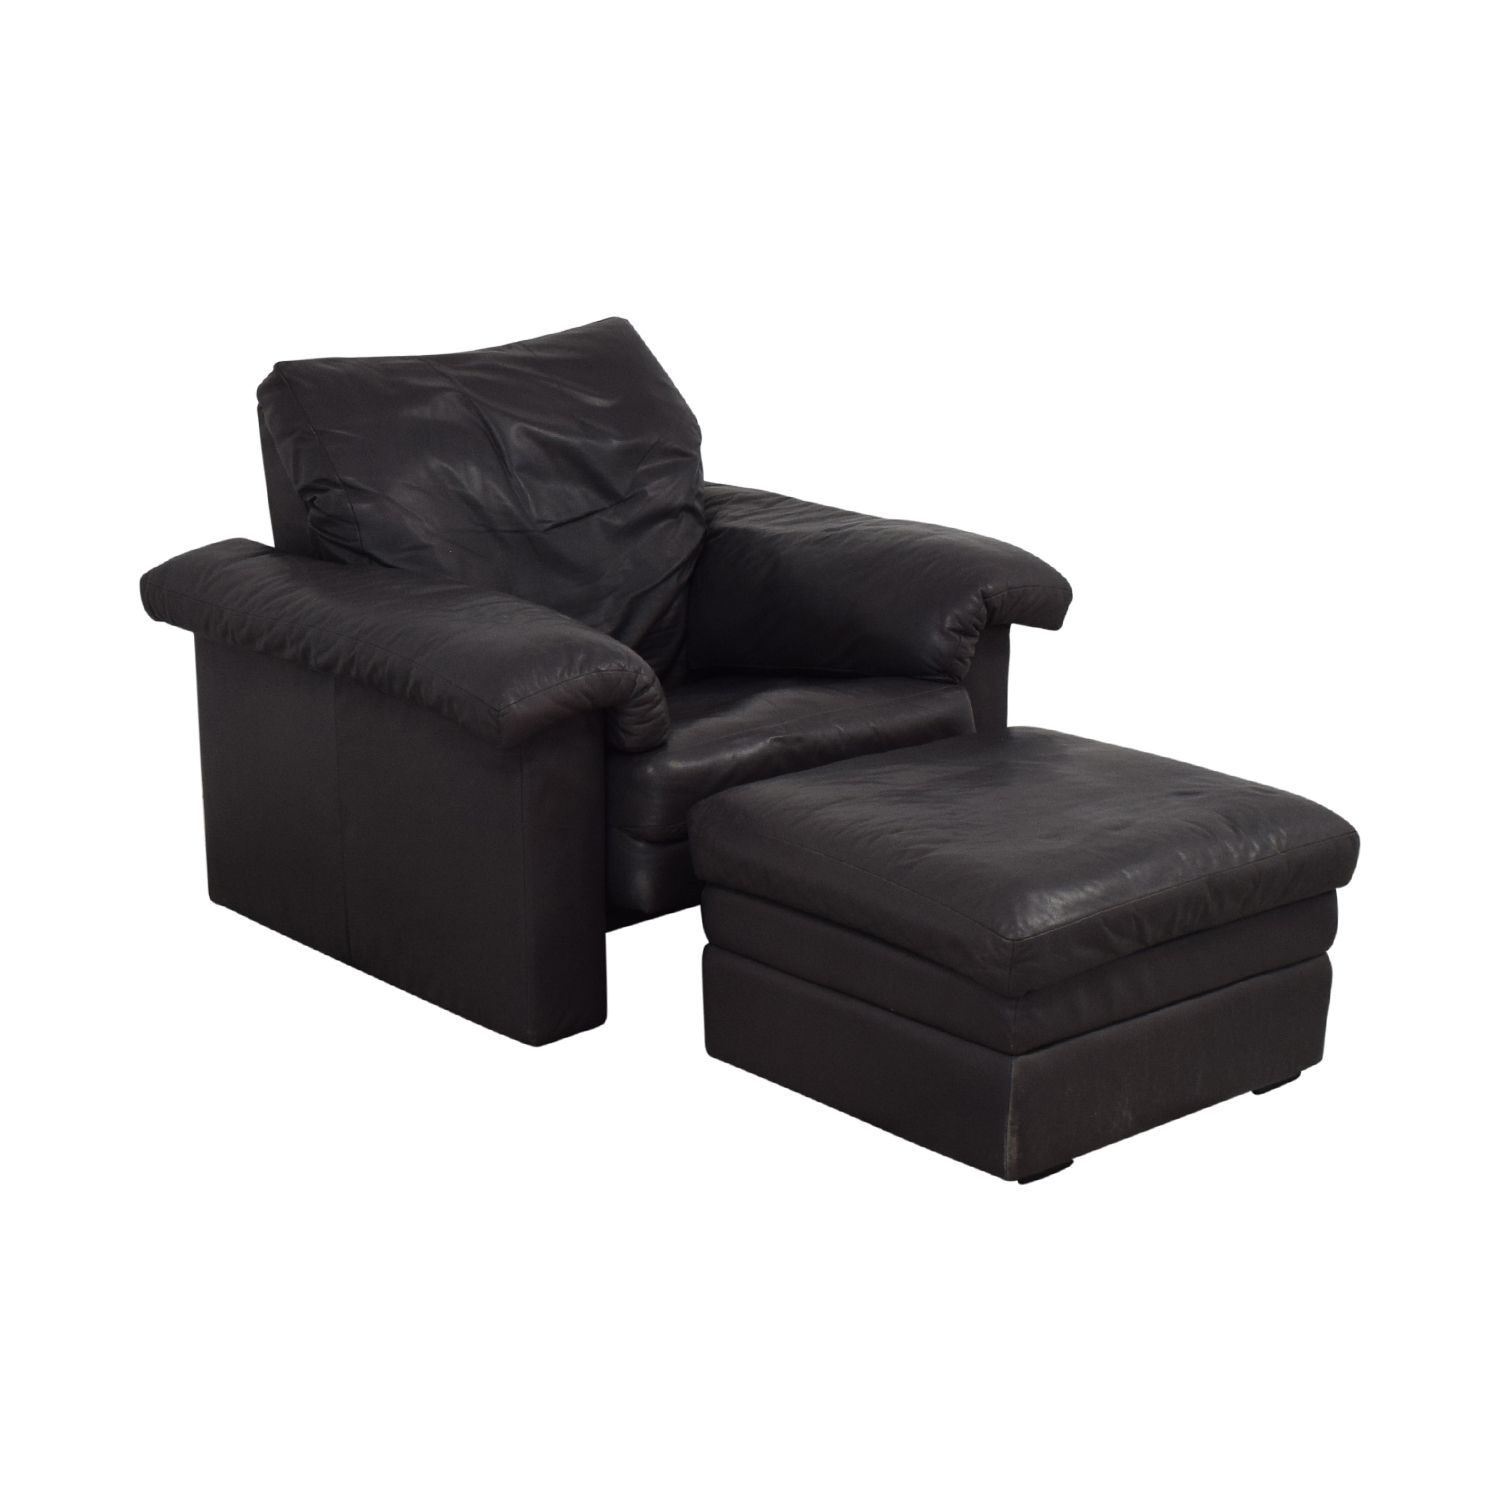 Rolf Benz Armchair and Ottoman Set / Chairs